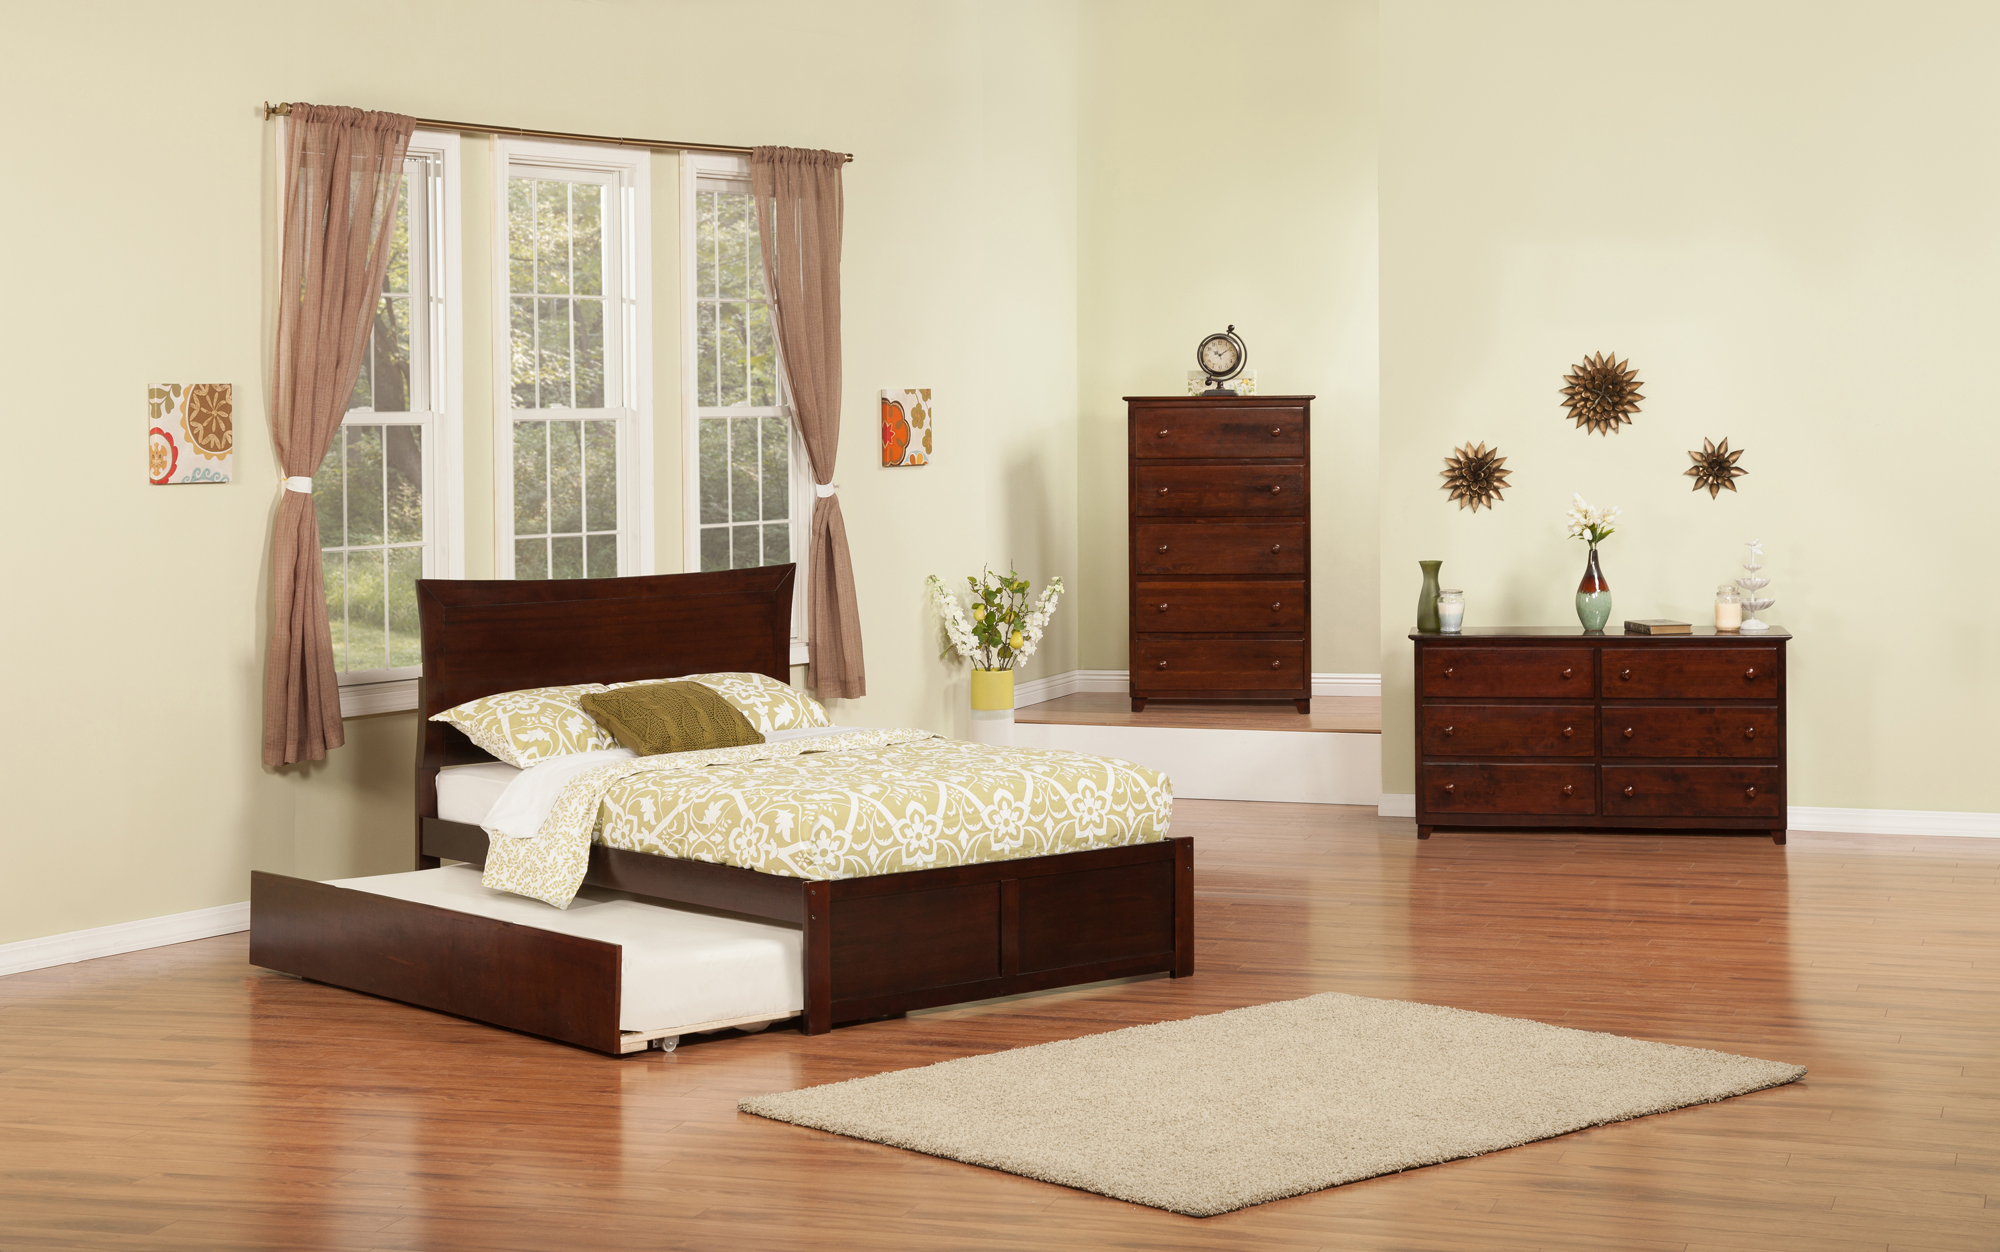 Metro Full Platform Bed with Flat Panel Foot Board and Twin Size Urban Trundle Bed in Walnut by Atlantic Furniture